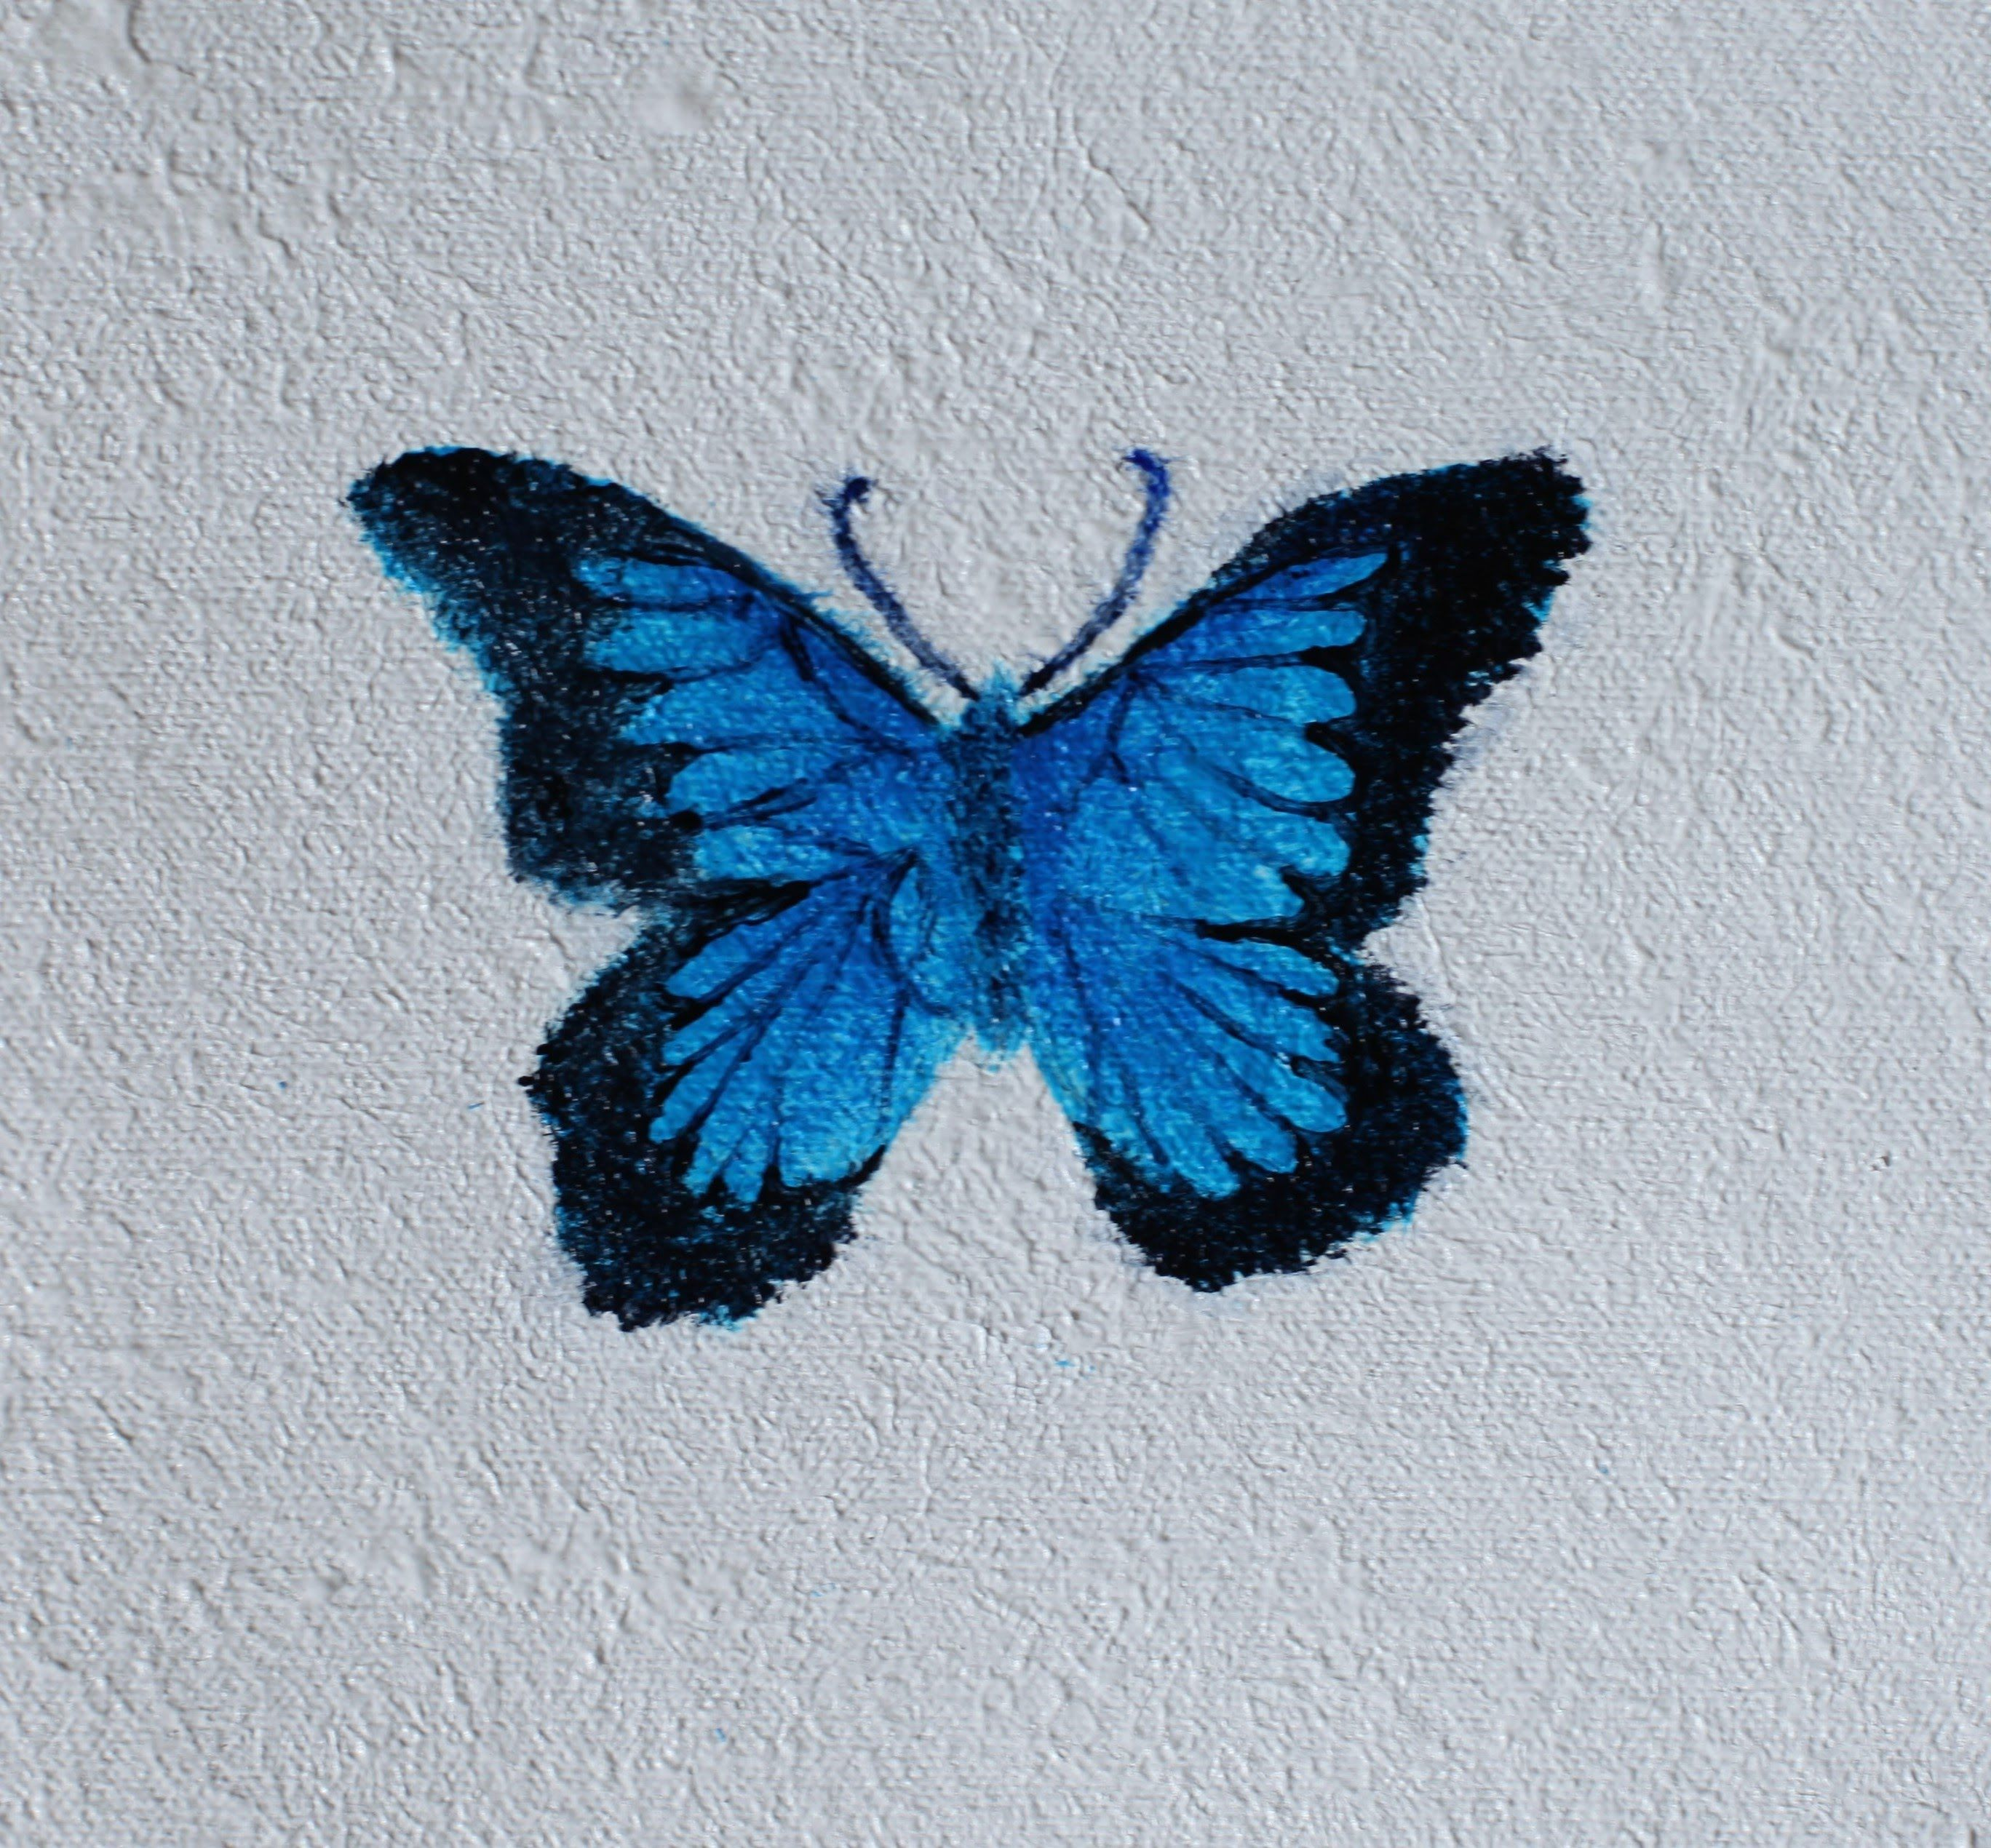 How To: Paint a Butterfly Using Acrylics